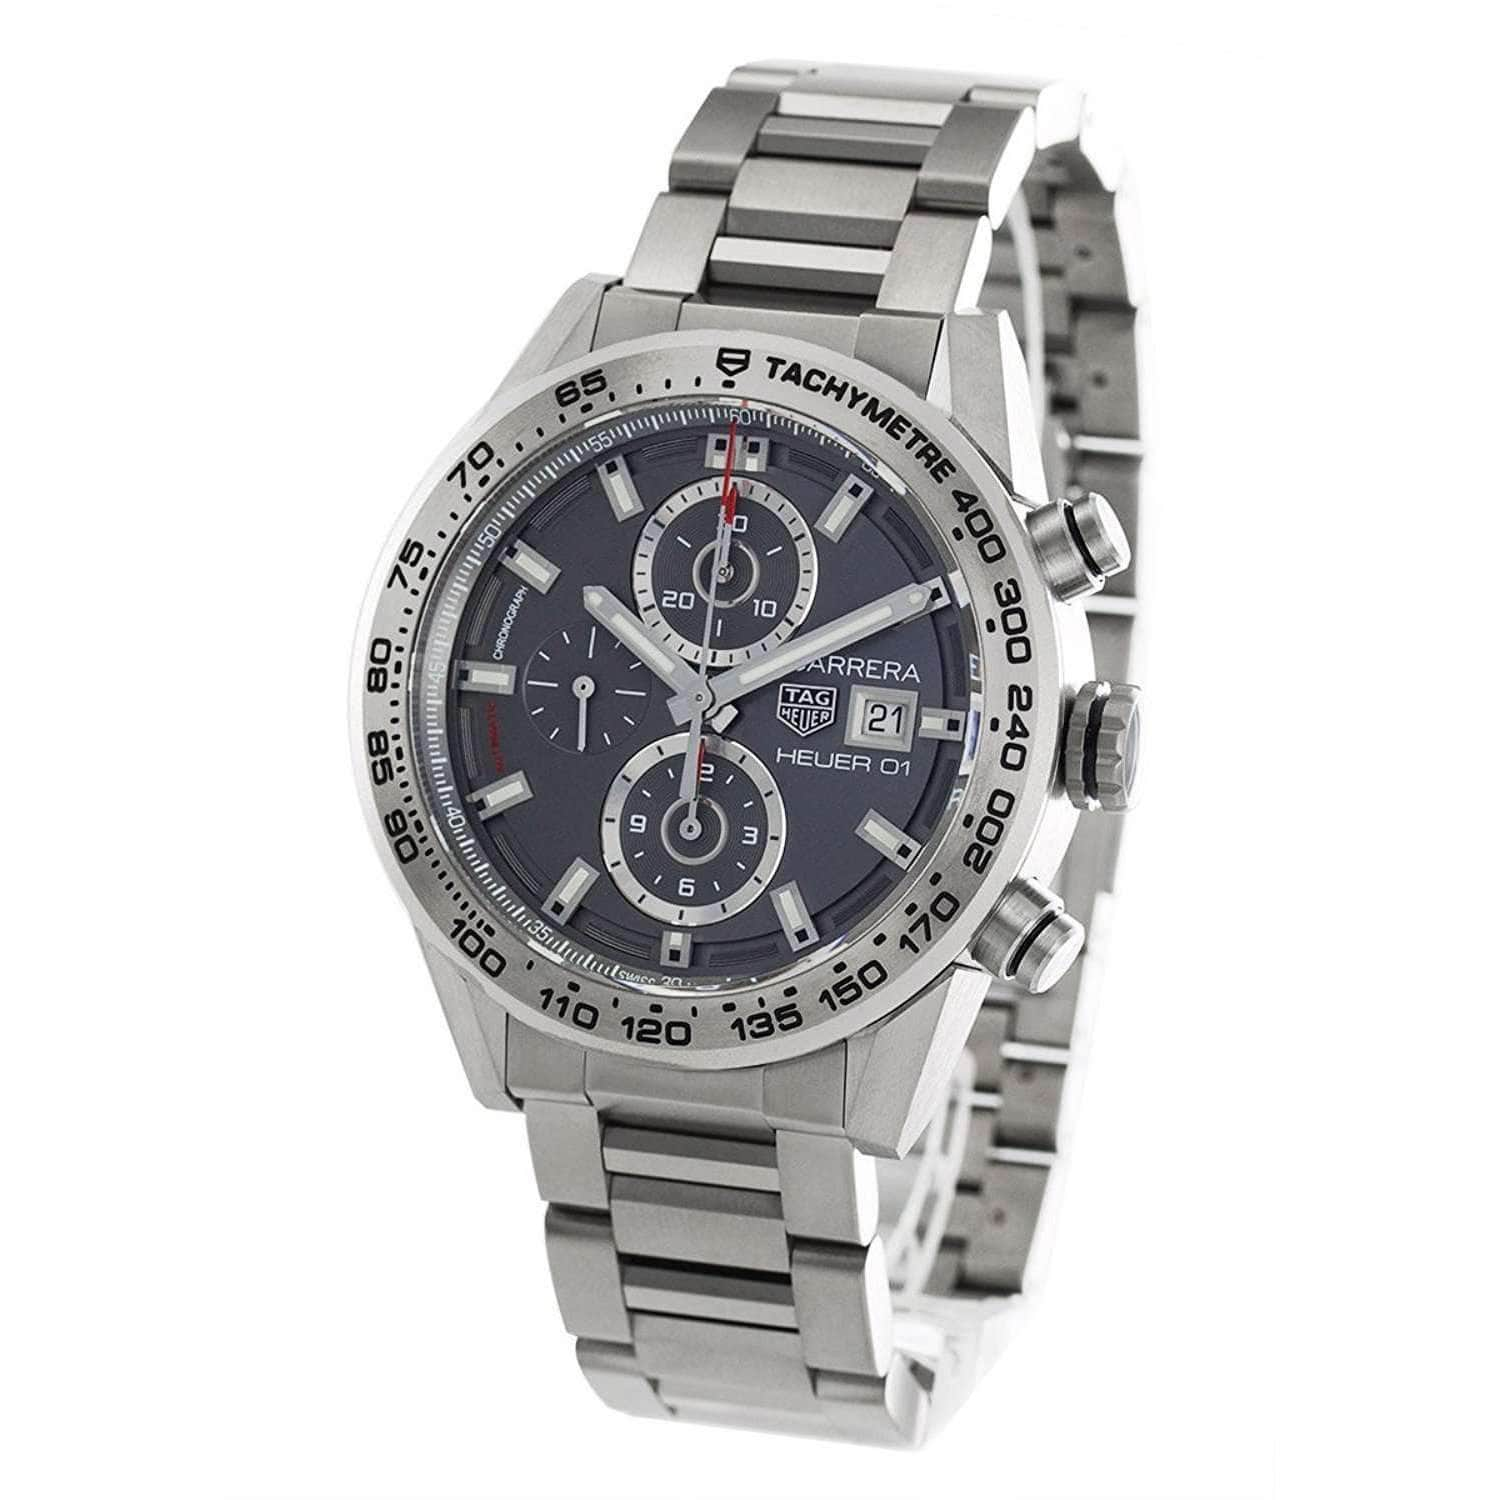 chrono ref steel caliber stainless heuer carrera tag chronograph automatic ss calibre watch sku wristwatch watches